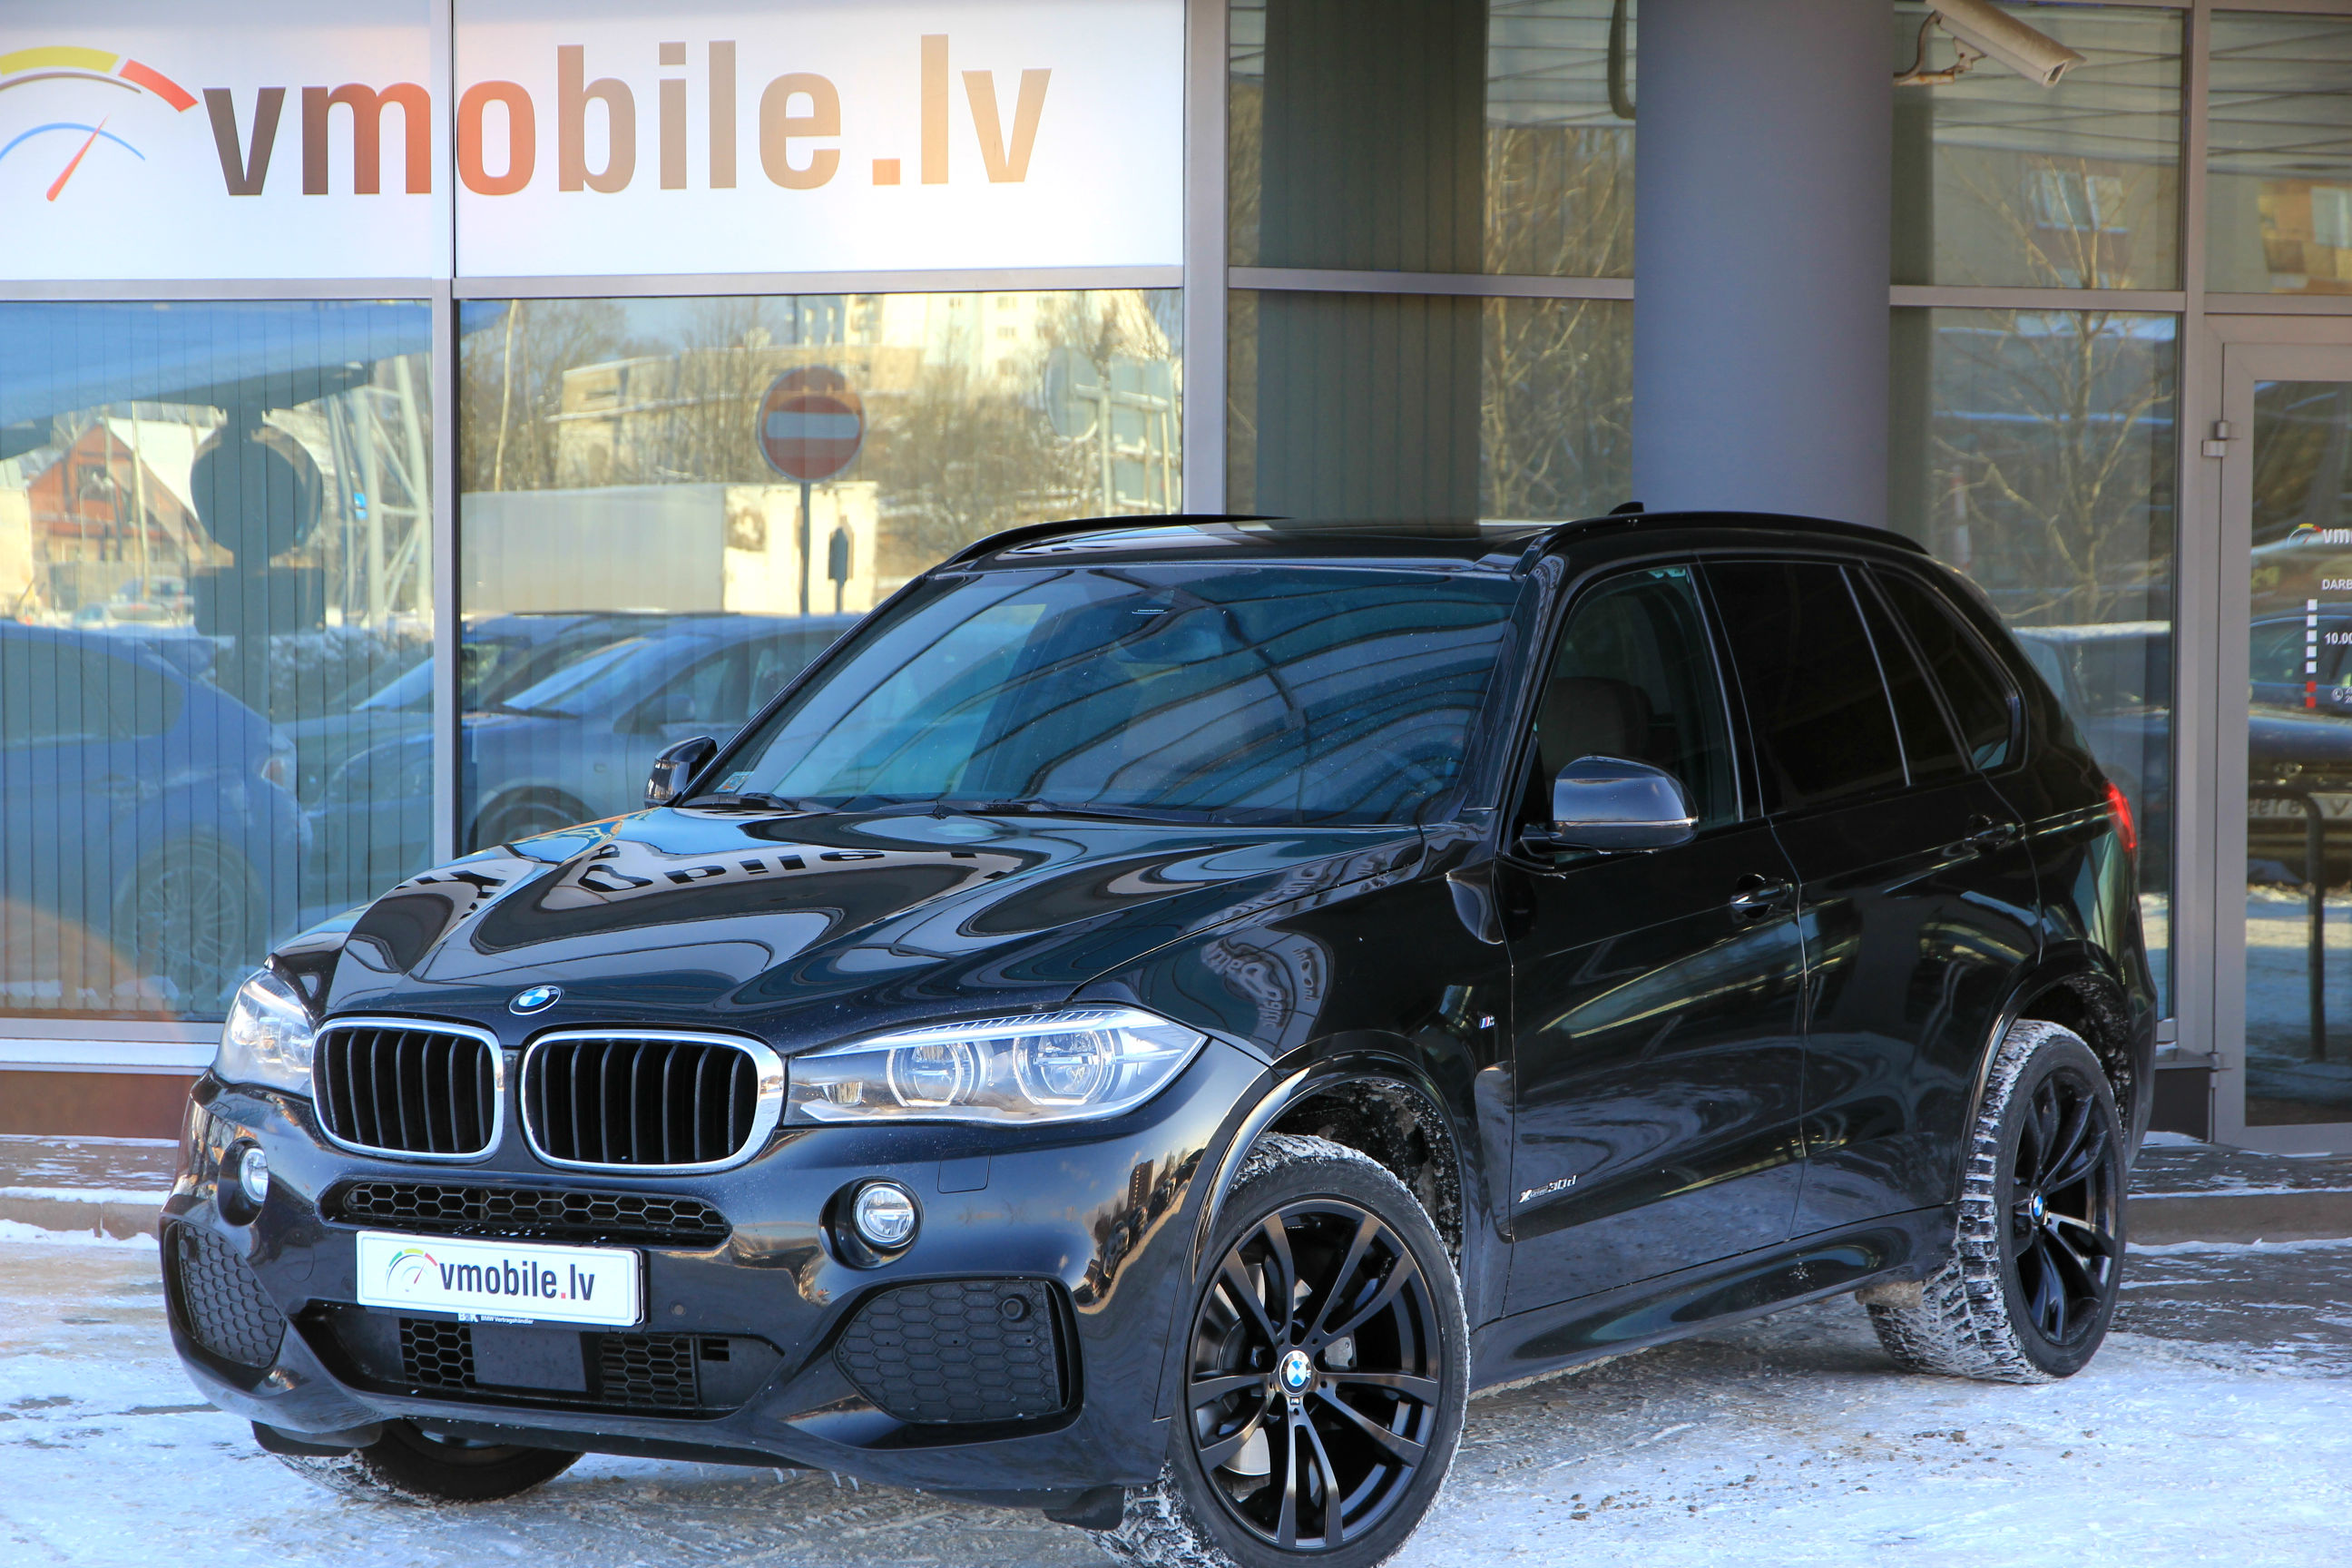 BMW X5 3.0d xdrive 247HP M PACKAGE HEAD UP ACTIVE STEERING KEYLESS GO PANORAMA